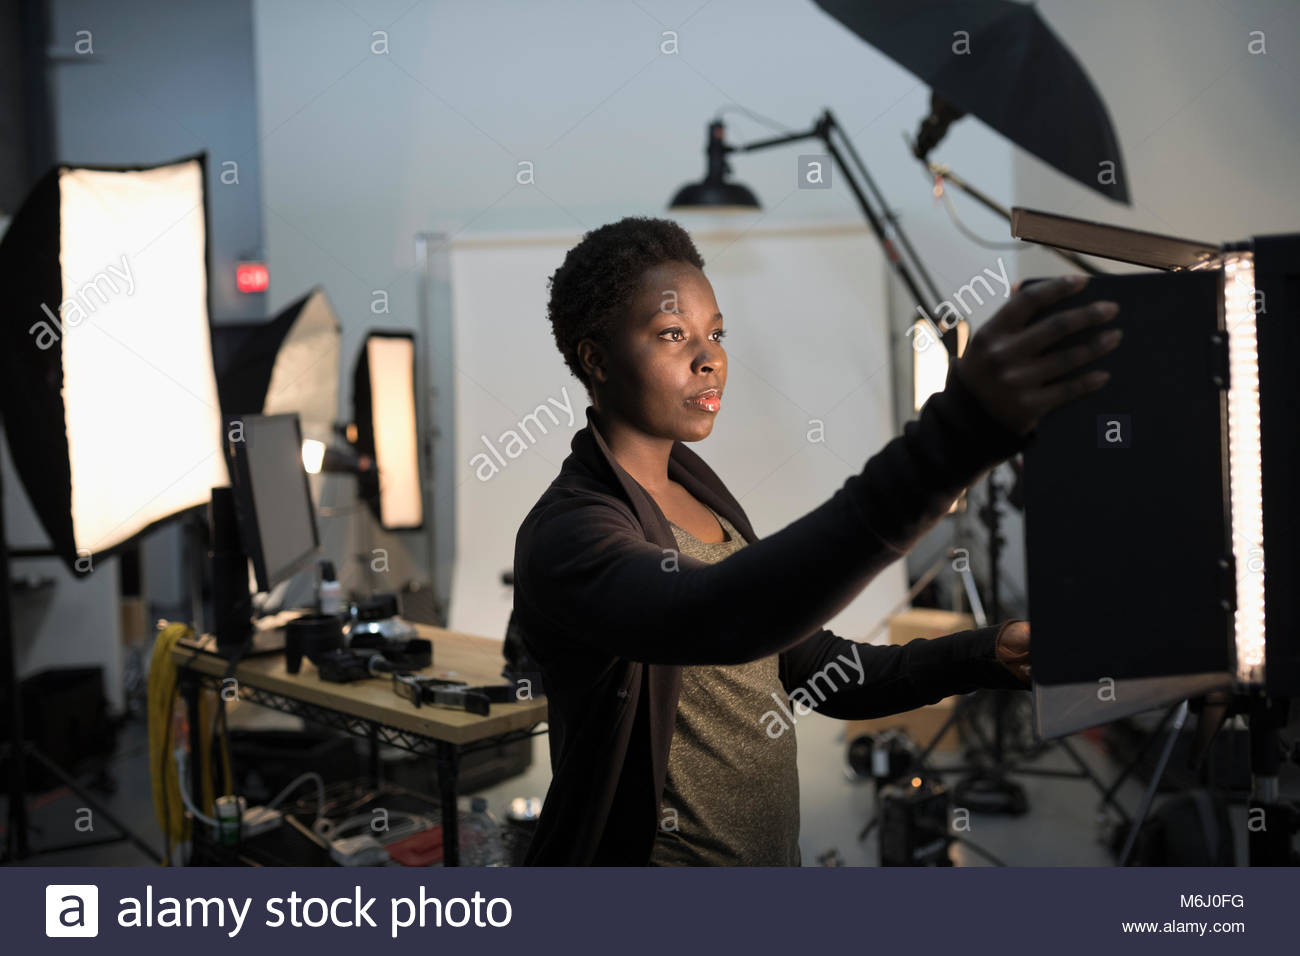 Focused female photographer adjusting lighting equipment for photo shoot in studio - Stock Image